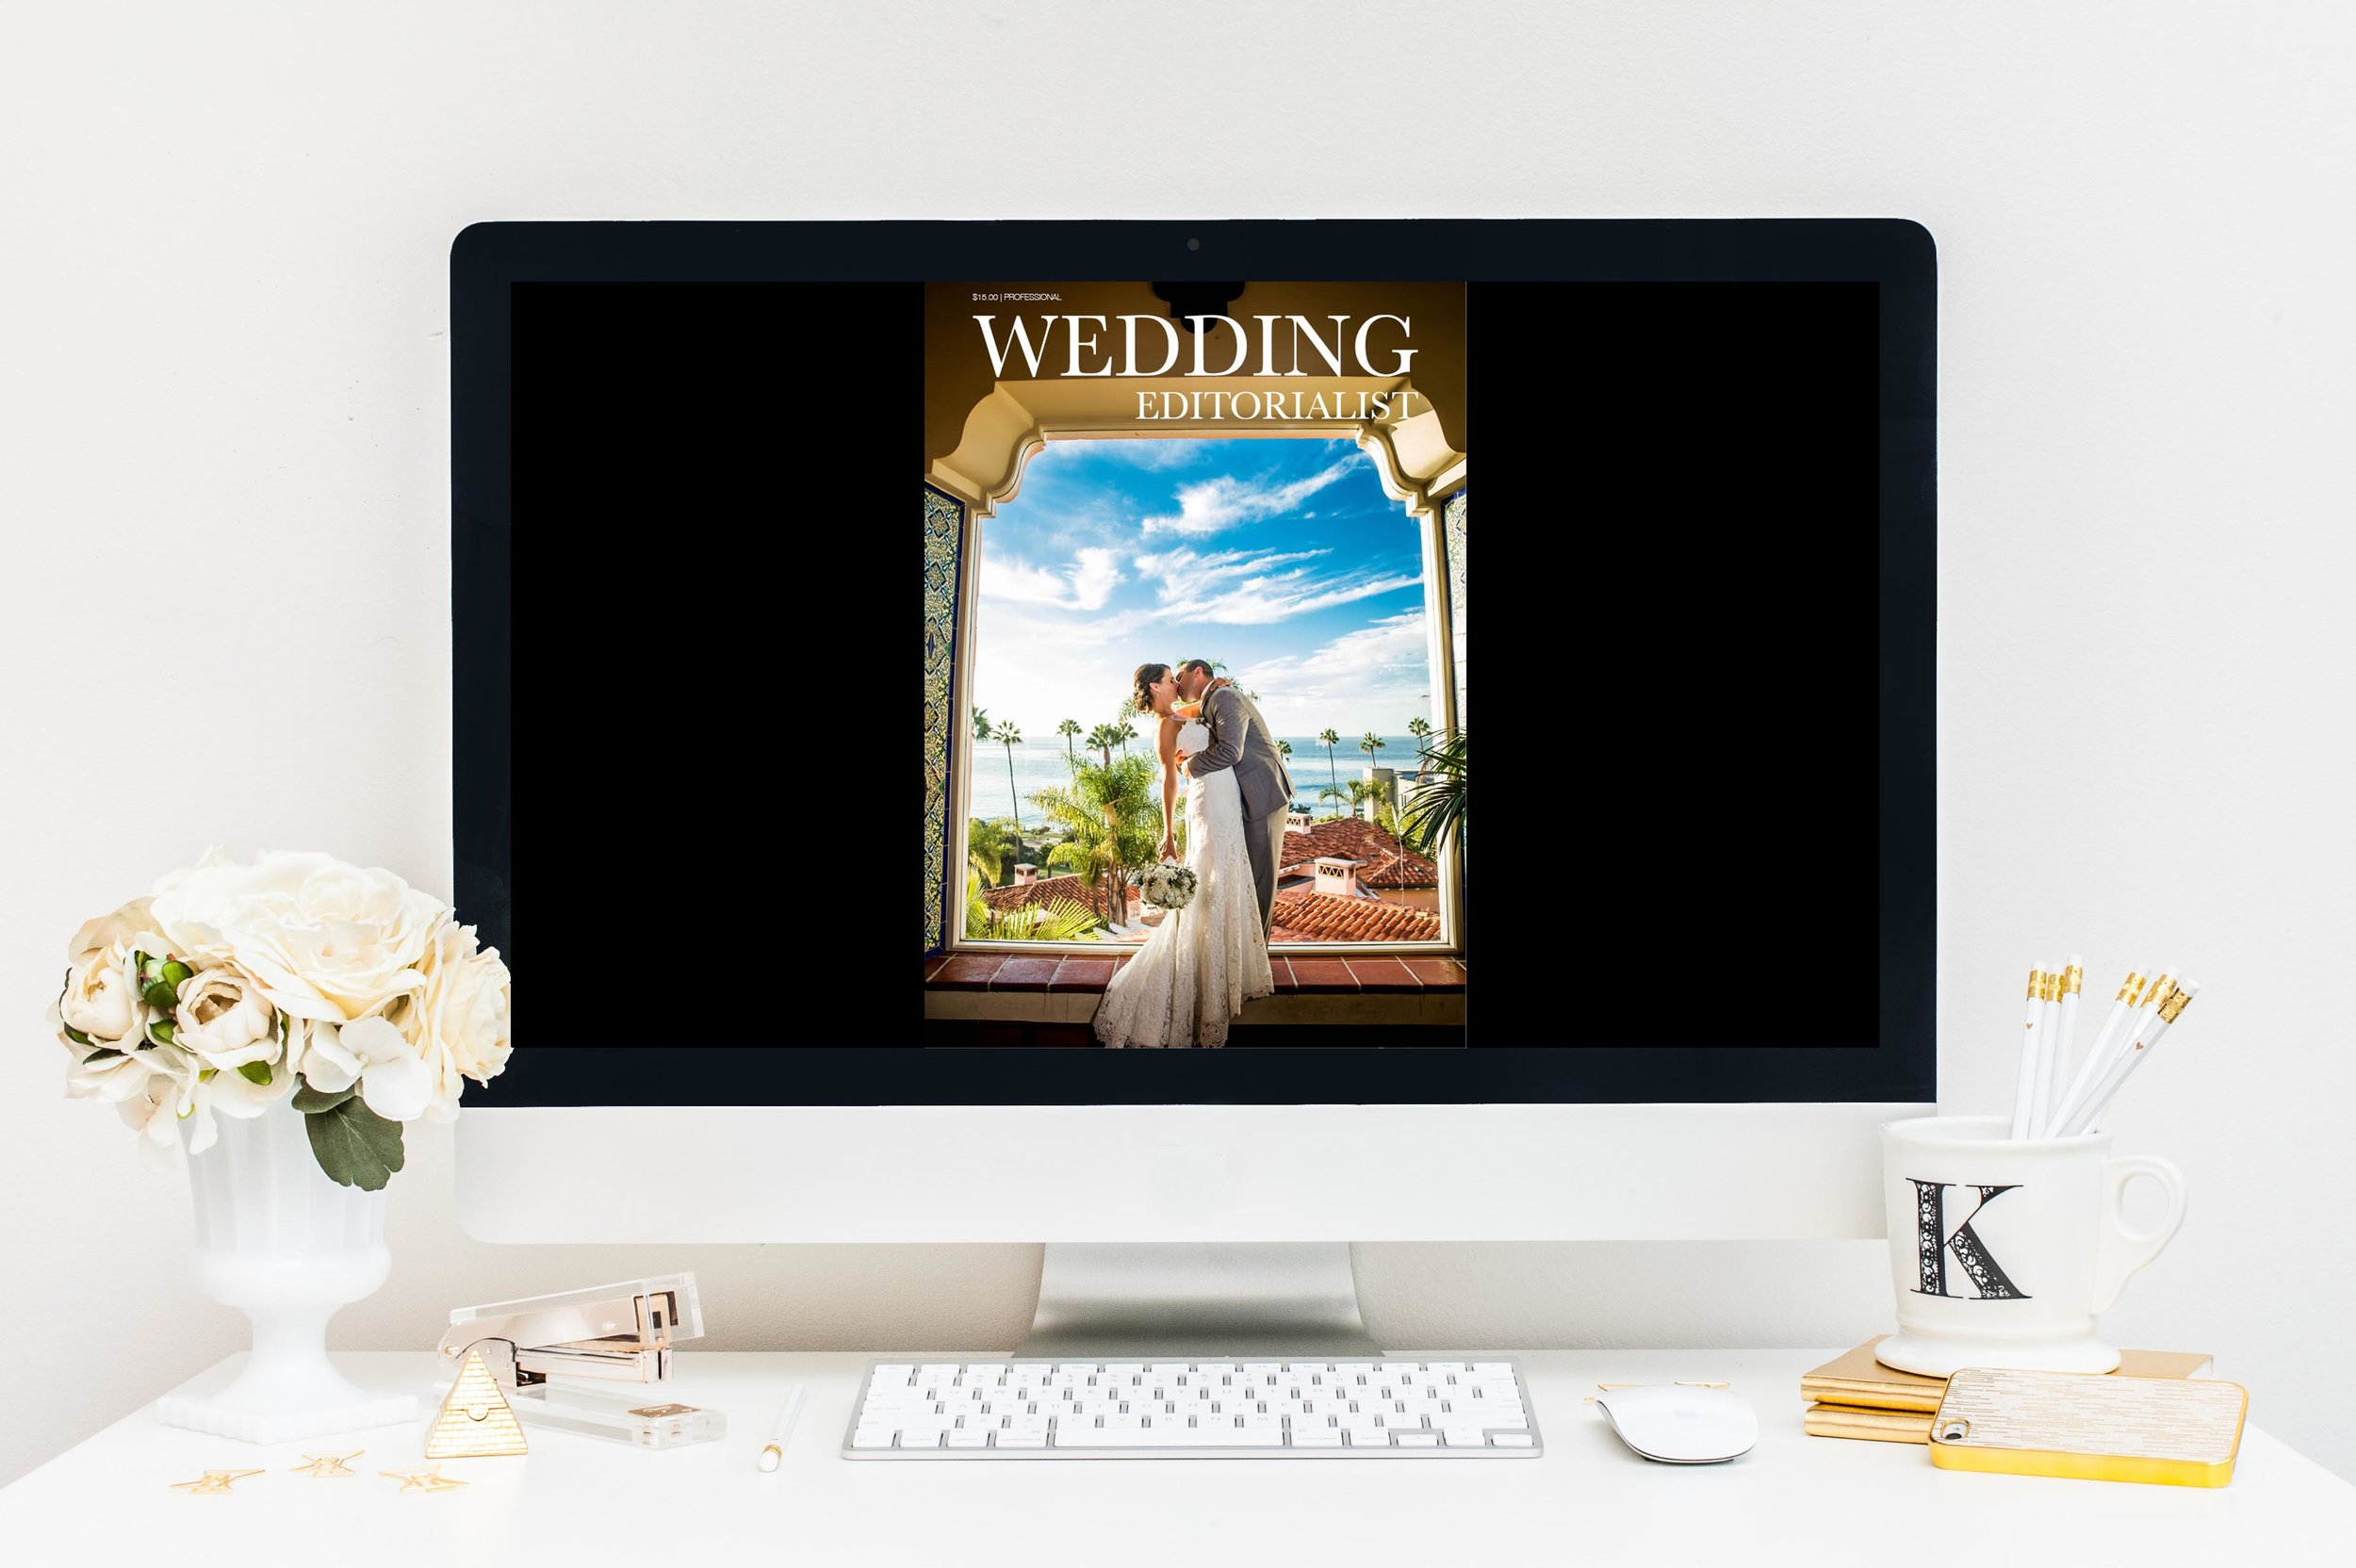 Wedding professionals love Wedding Editorialist Magazine! It allows the to showcase their work with complete control over the imagery, content, and words.